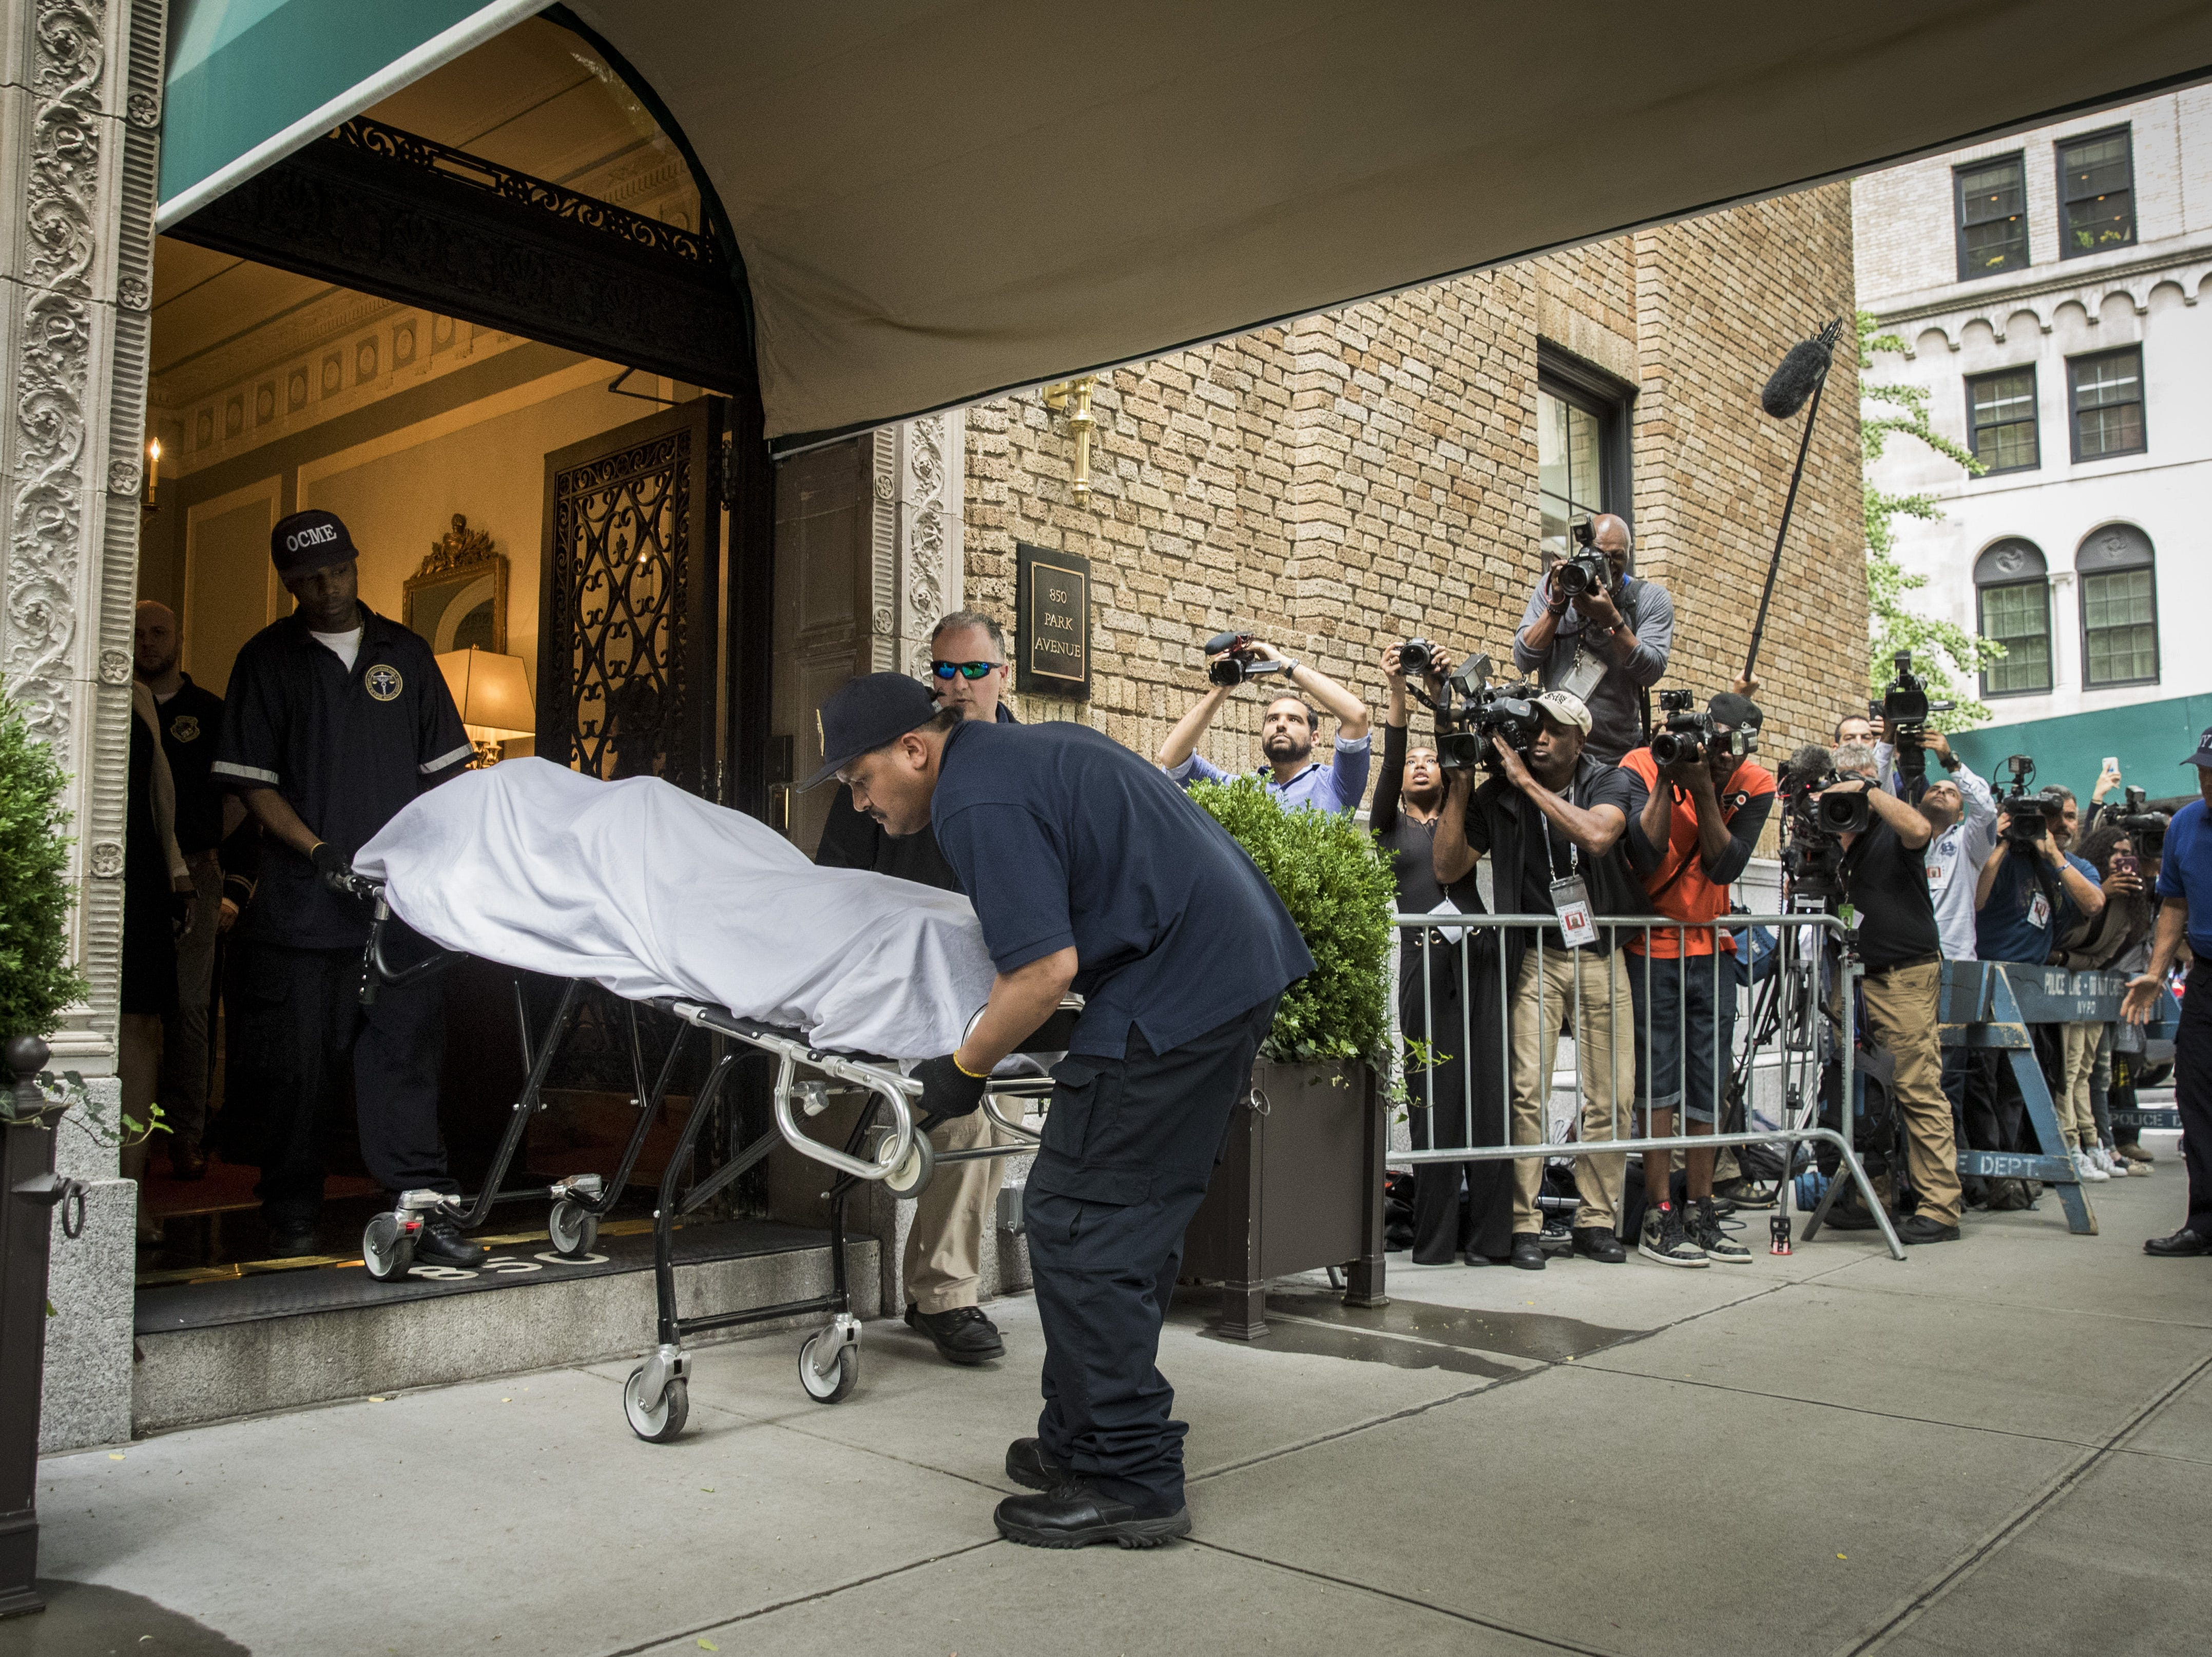 June 5, 2018: City workers carry the body of fashion designer Kate Spade out of her apartment building after she was found dead of an apparent suicide in New York City.